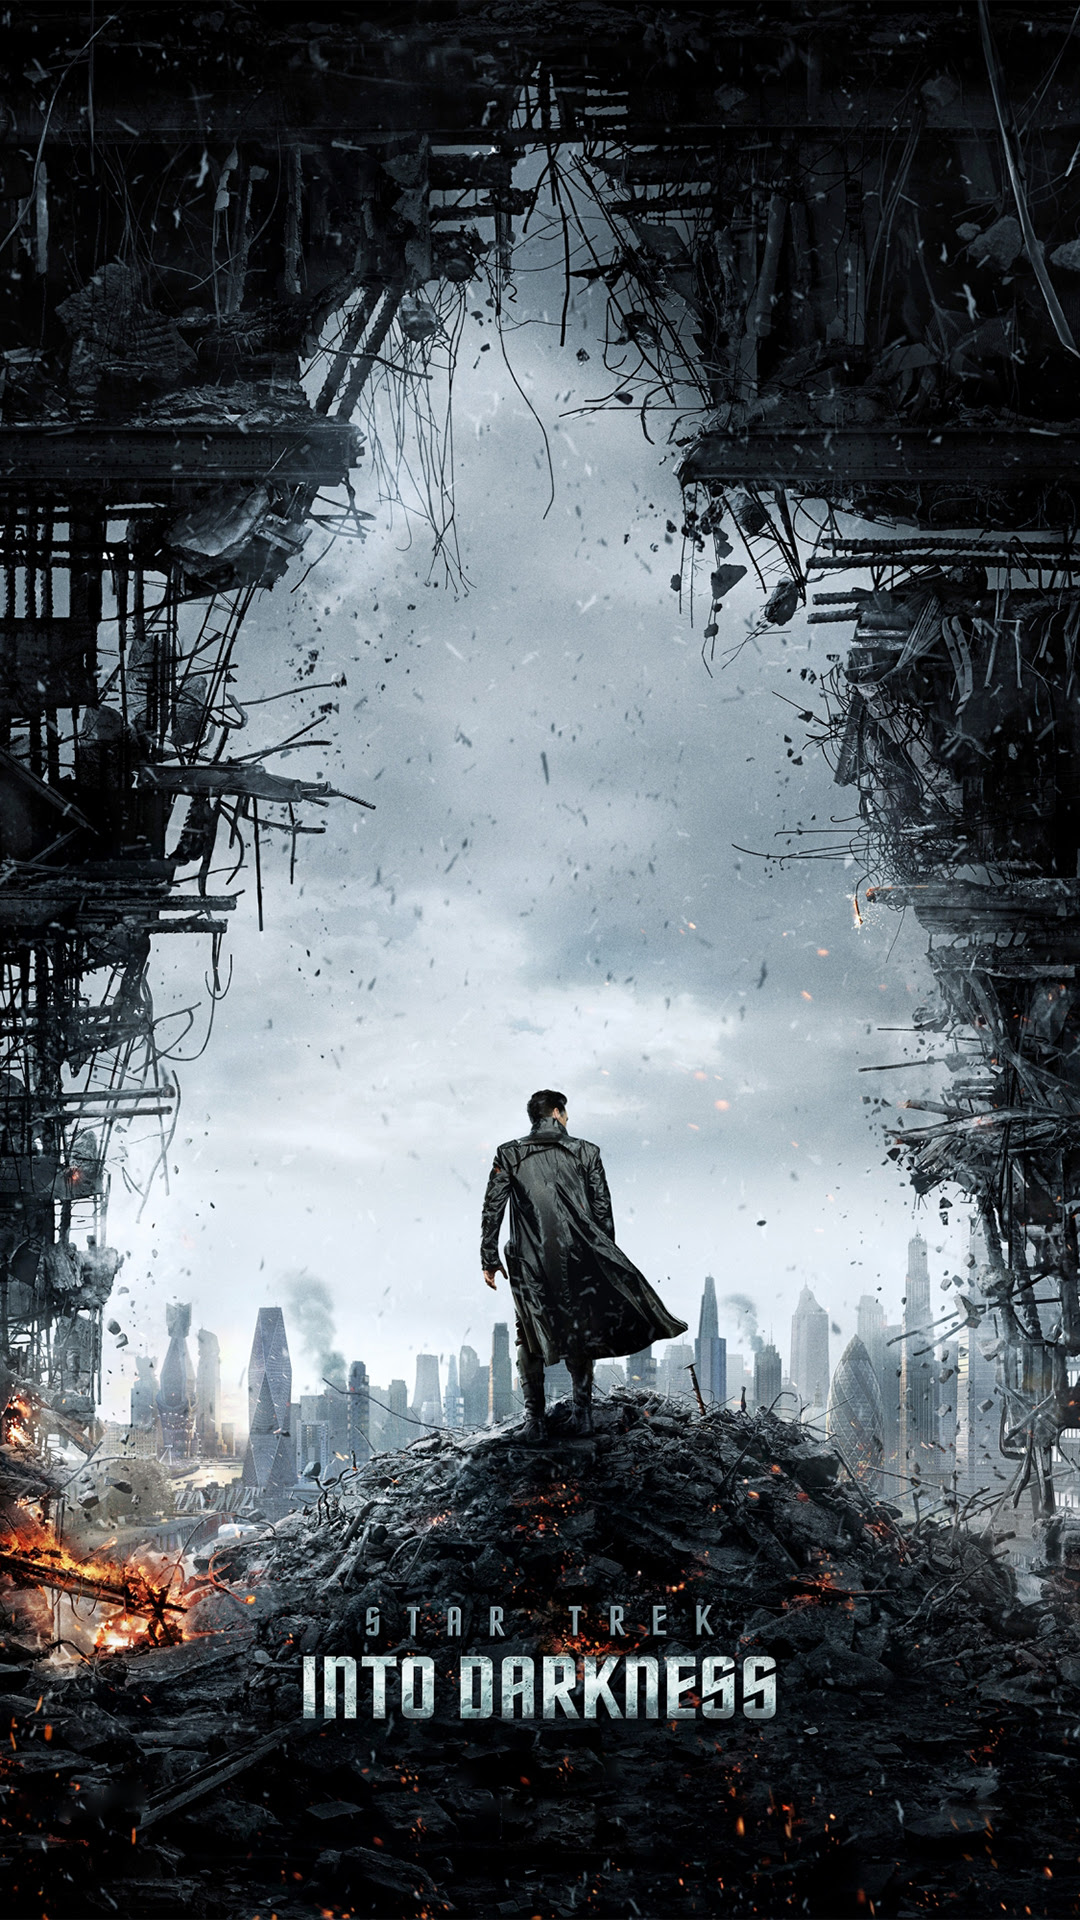 Star Trek Into Darkness Best Htc One Wallpapers Free And Easy